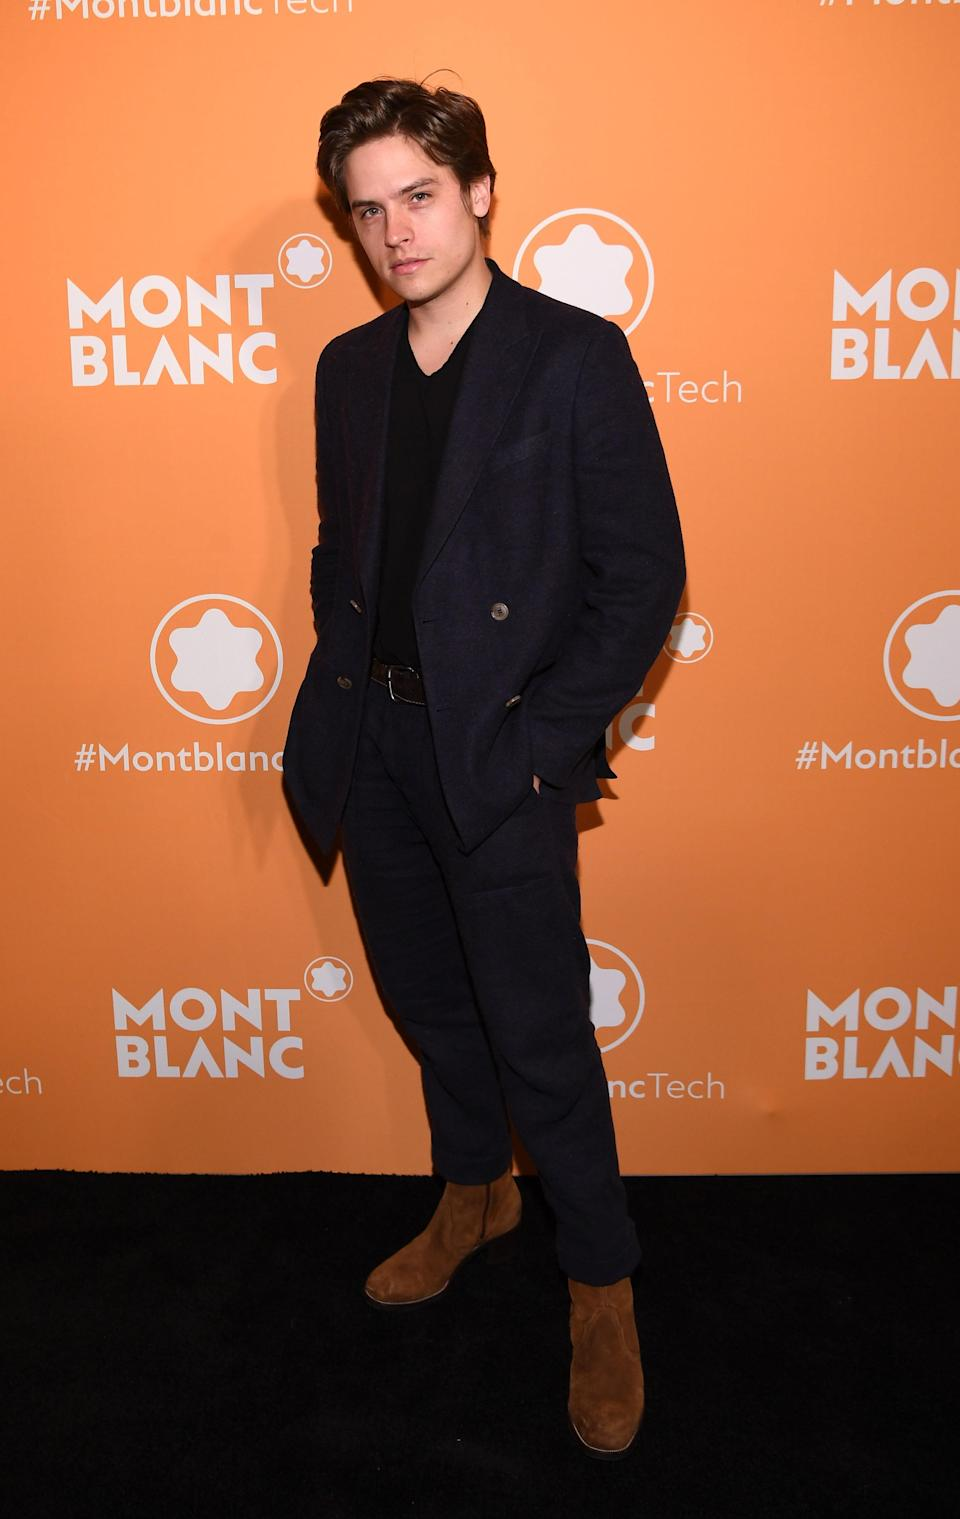 <p>WHERE: A Montblanc event in New York City </p> <p>WHEN: March 10, 2020 </p> <p>WHY: With suede boots and a t-shirt, Sprouse makes a DB suit look nice and comfy. </p>